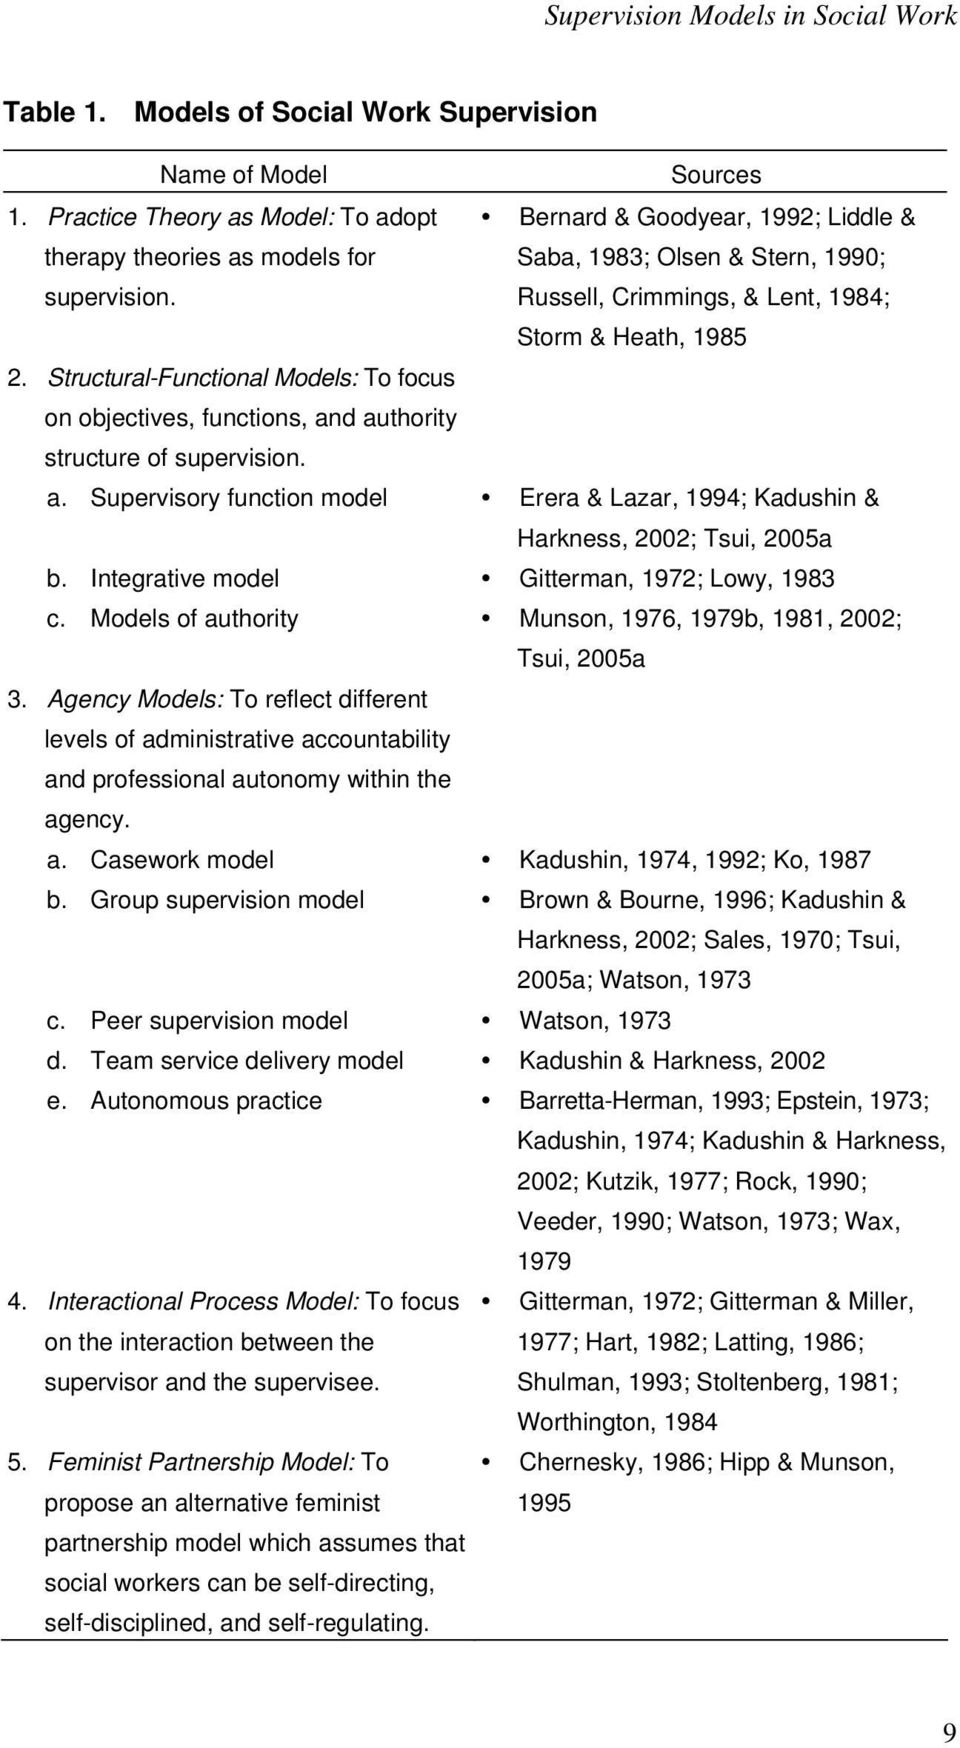 Structural-Functional Models: To focus on objectives, functions, and authority structure of supervision. a. Supervisory function model Erera & Lazar, 1994; Kadushin & Harkness, 2002; Tsui, 2005a b.